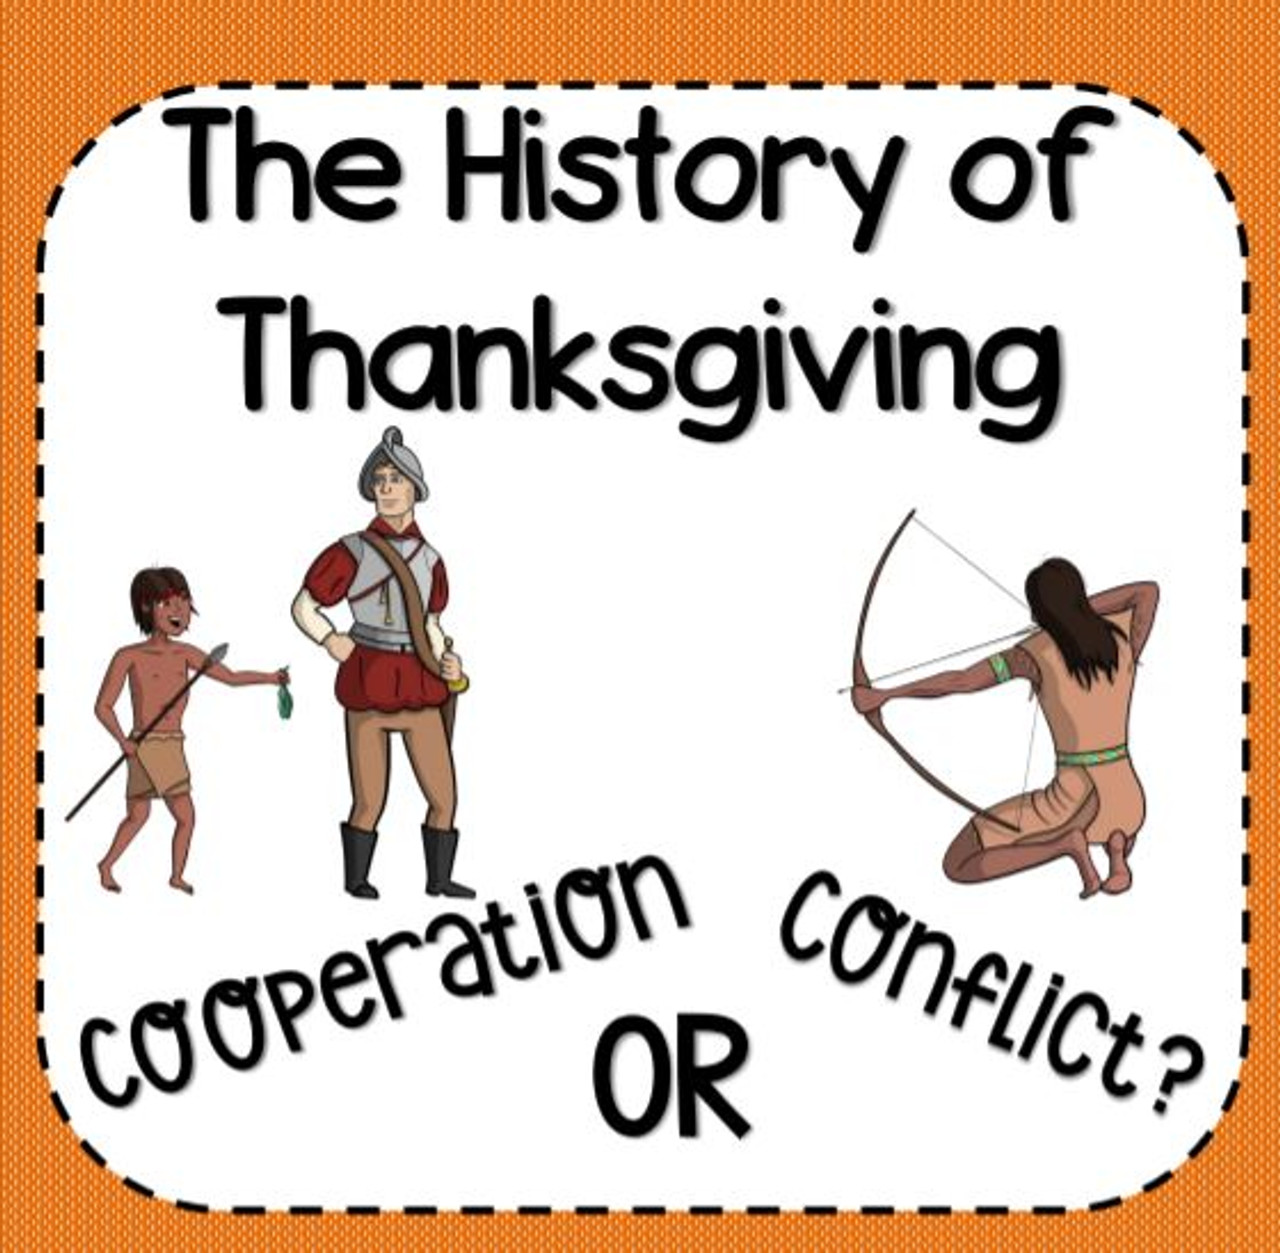 History of Thanksgiving Activities: Cooperation and Conflict